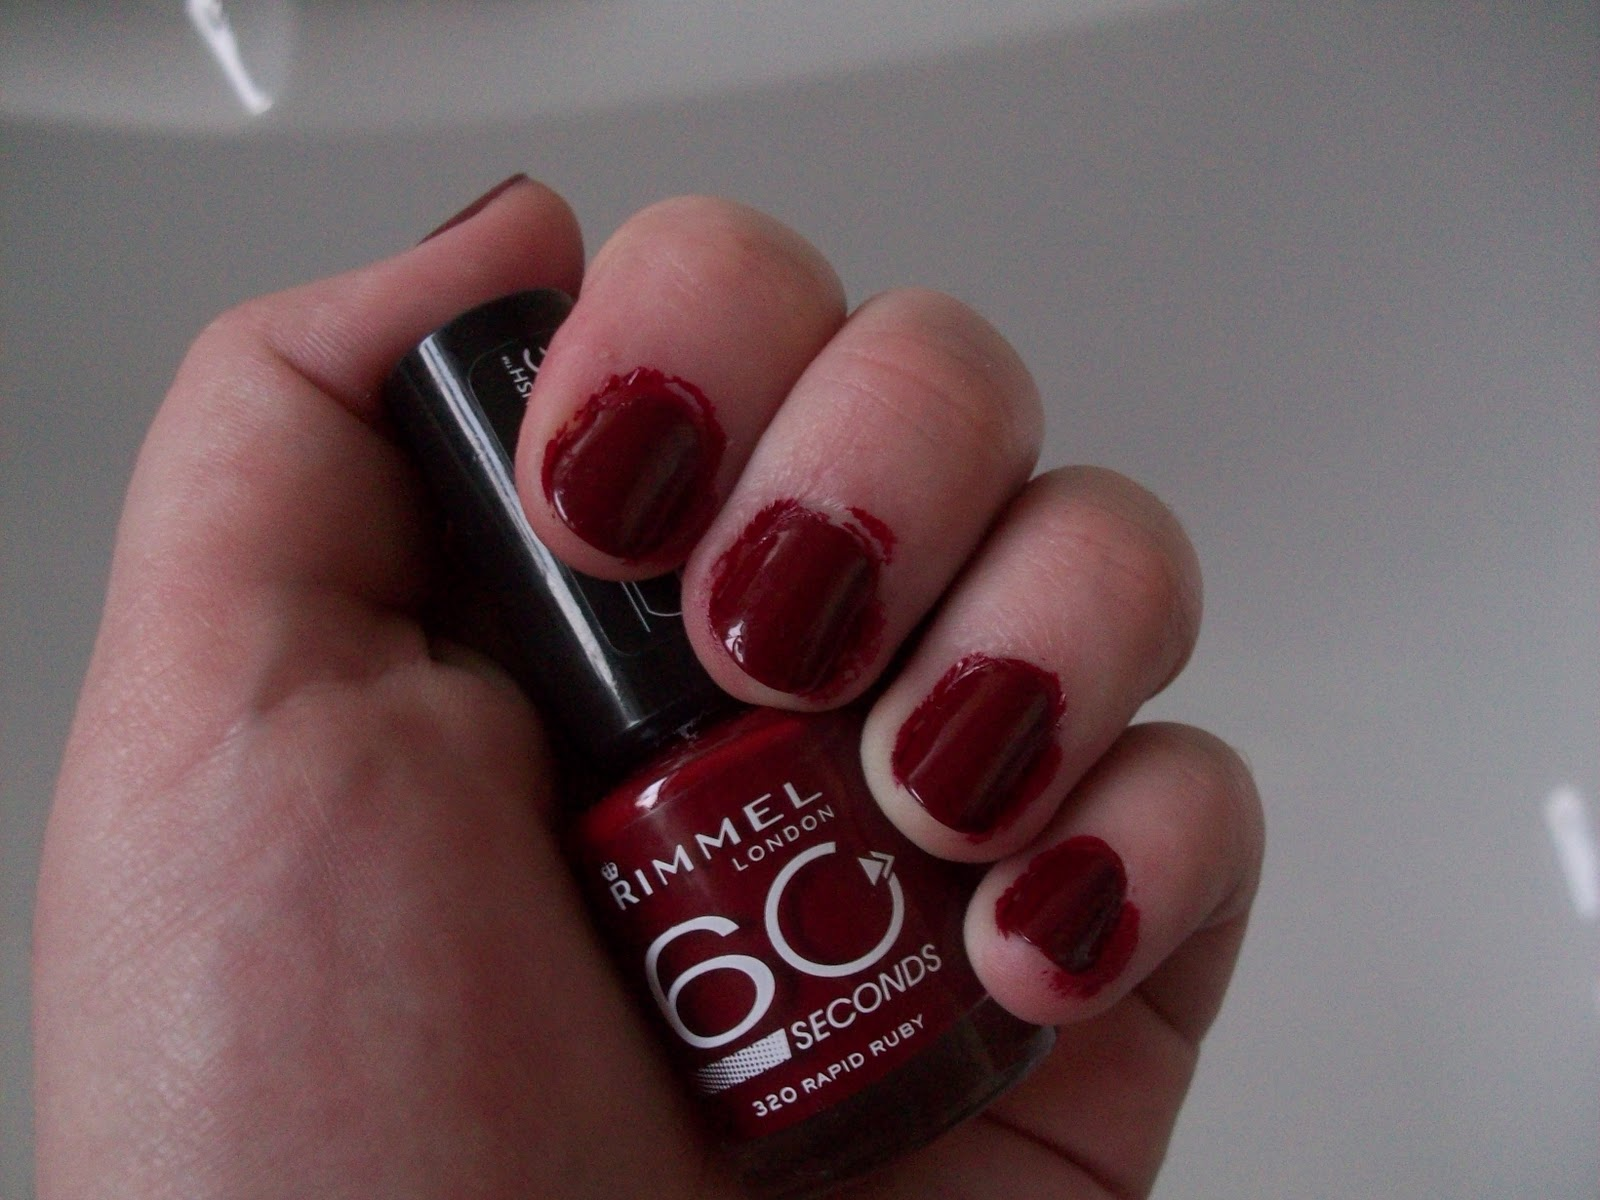 Pandemonium: NOTD- Rimmel 60 Seconds Nail Polish in Rapid Ruby